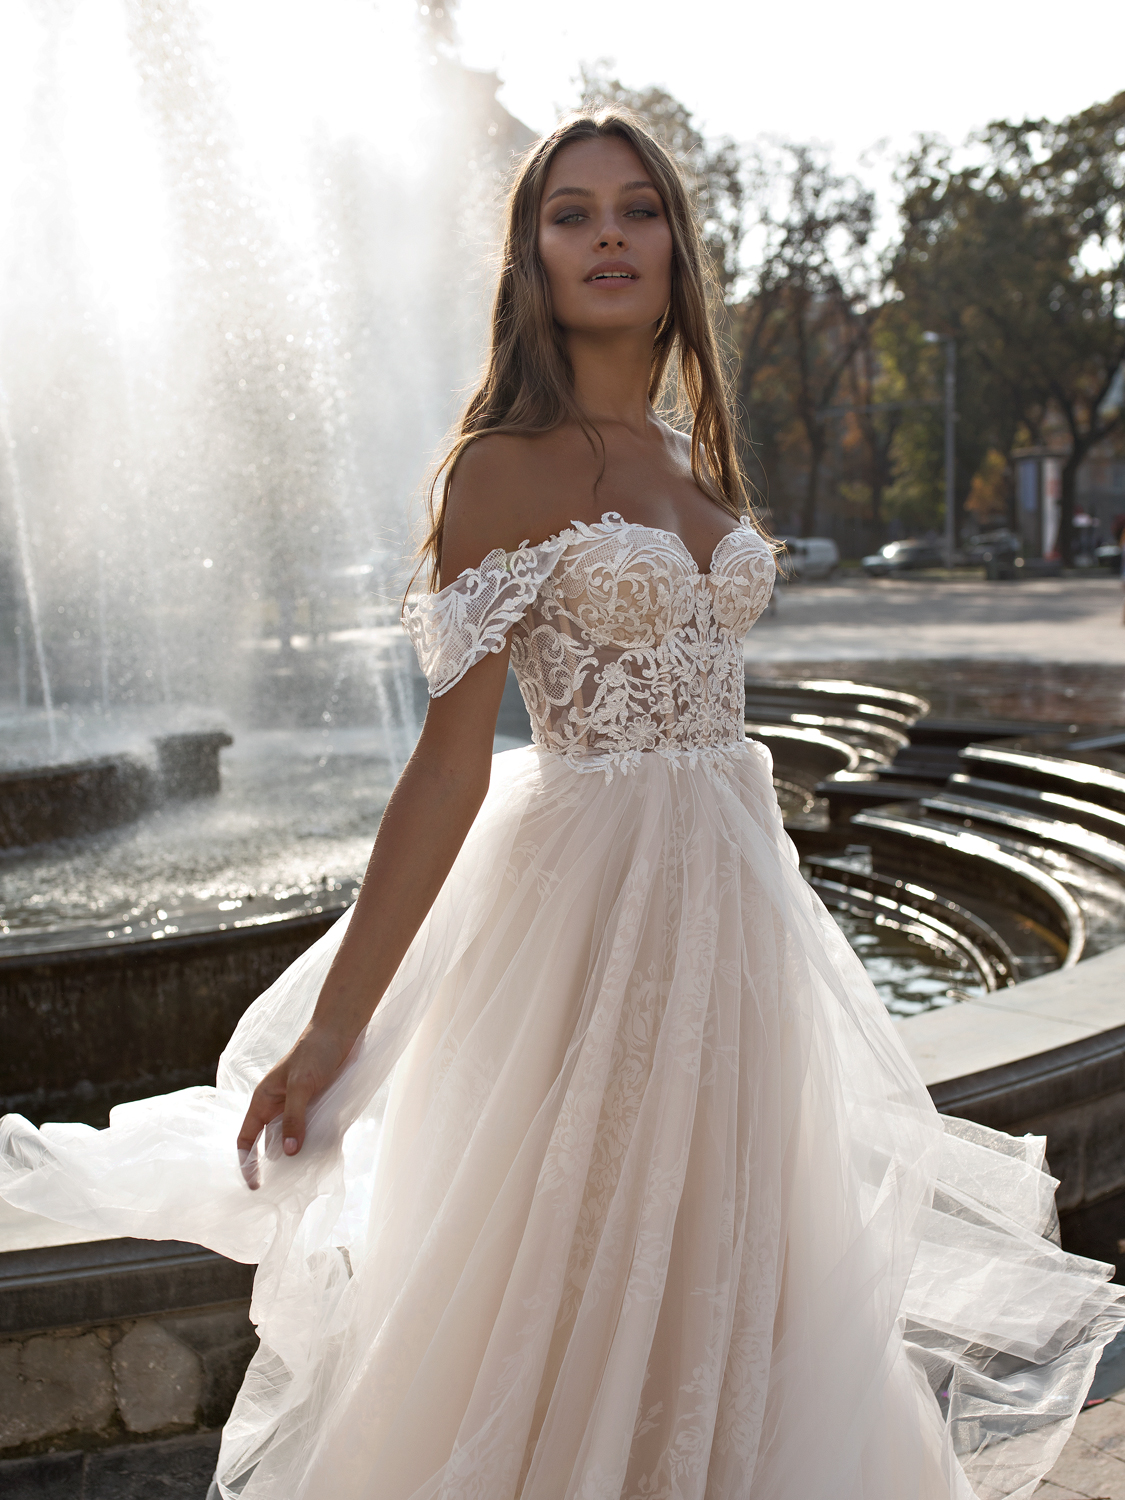 liri_designer_Wedding_Dress_melody.jpg